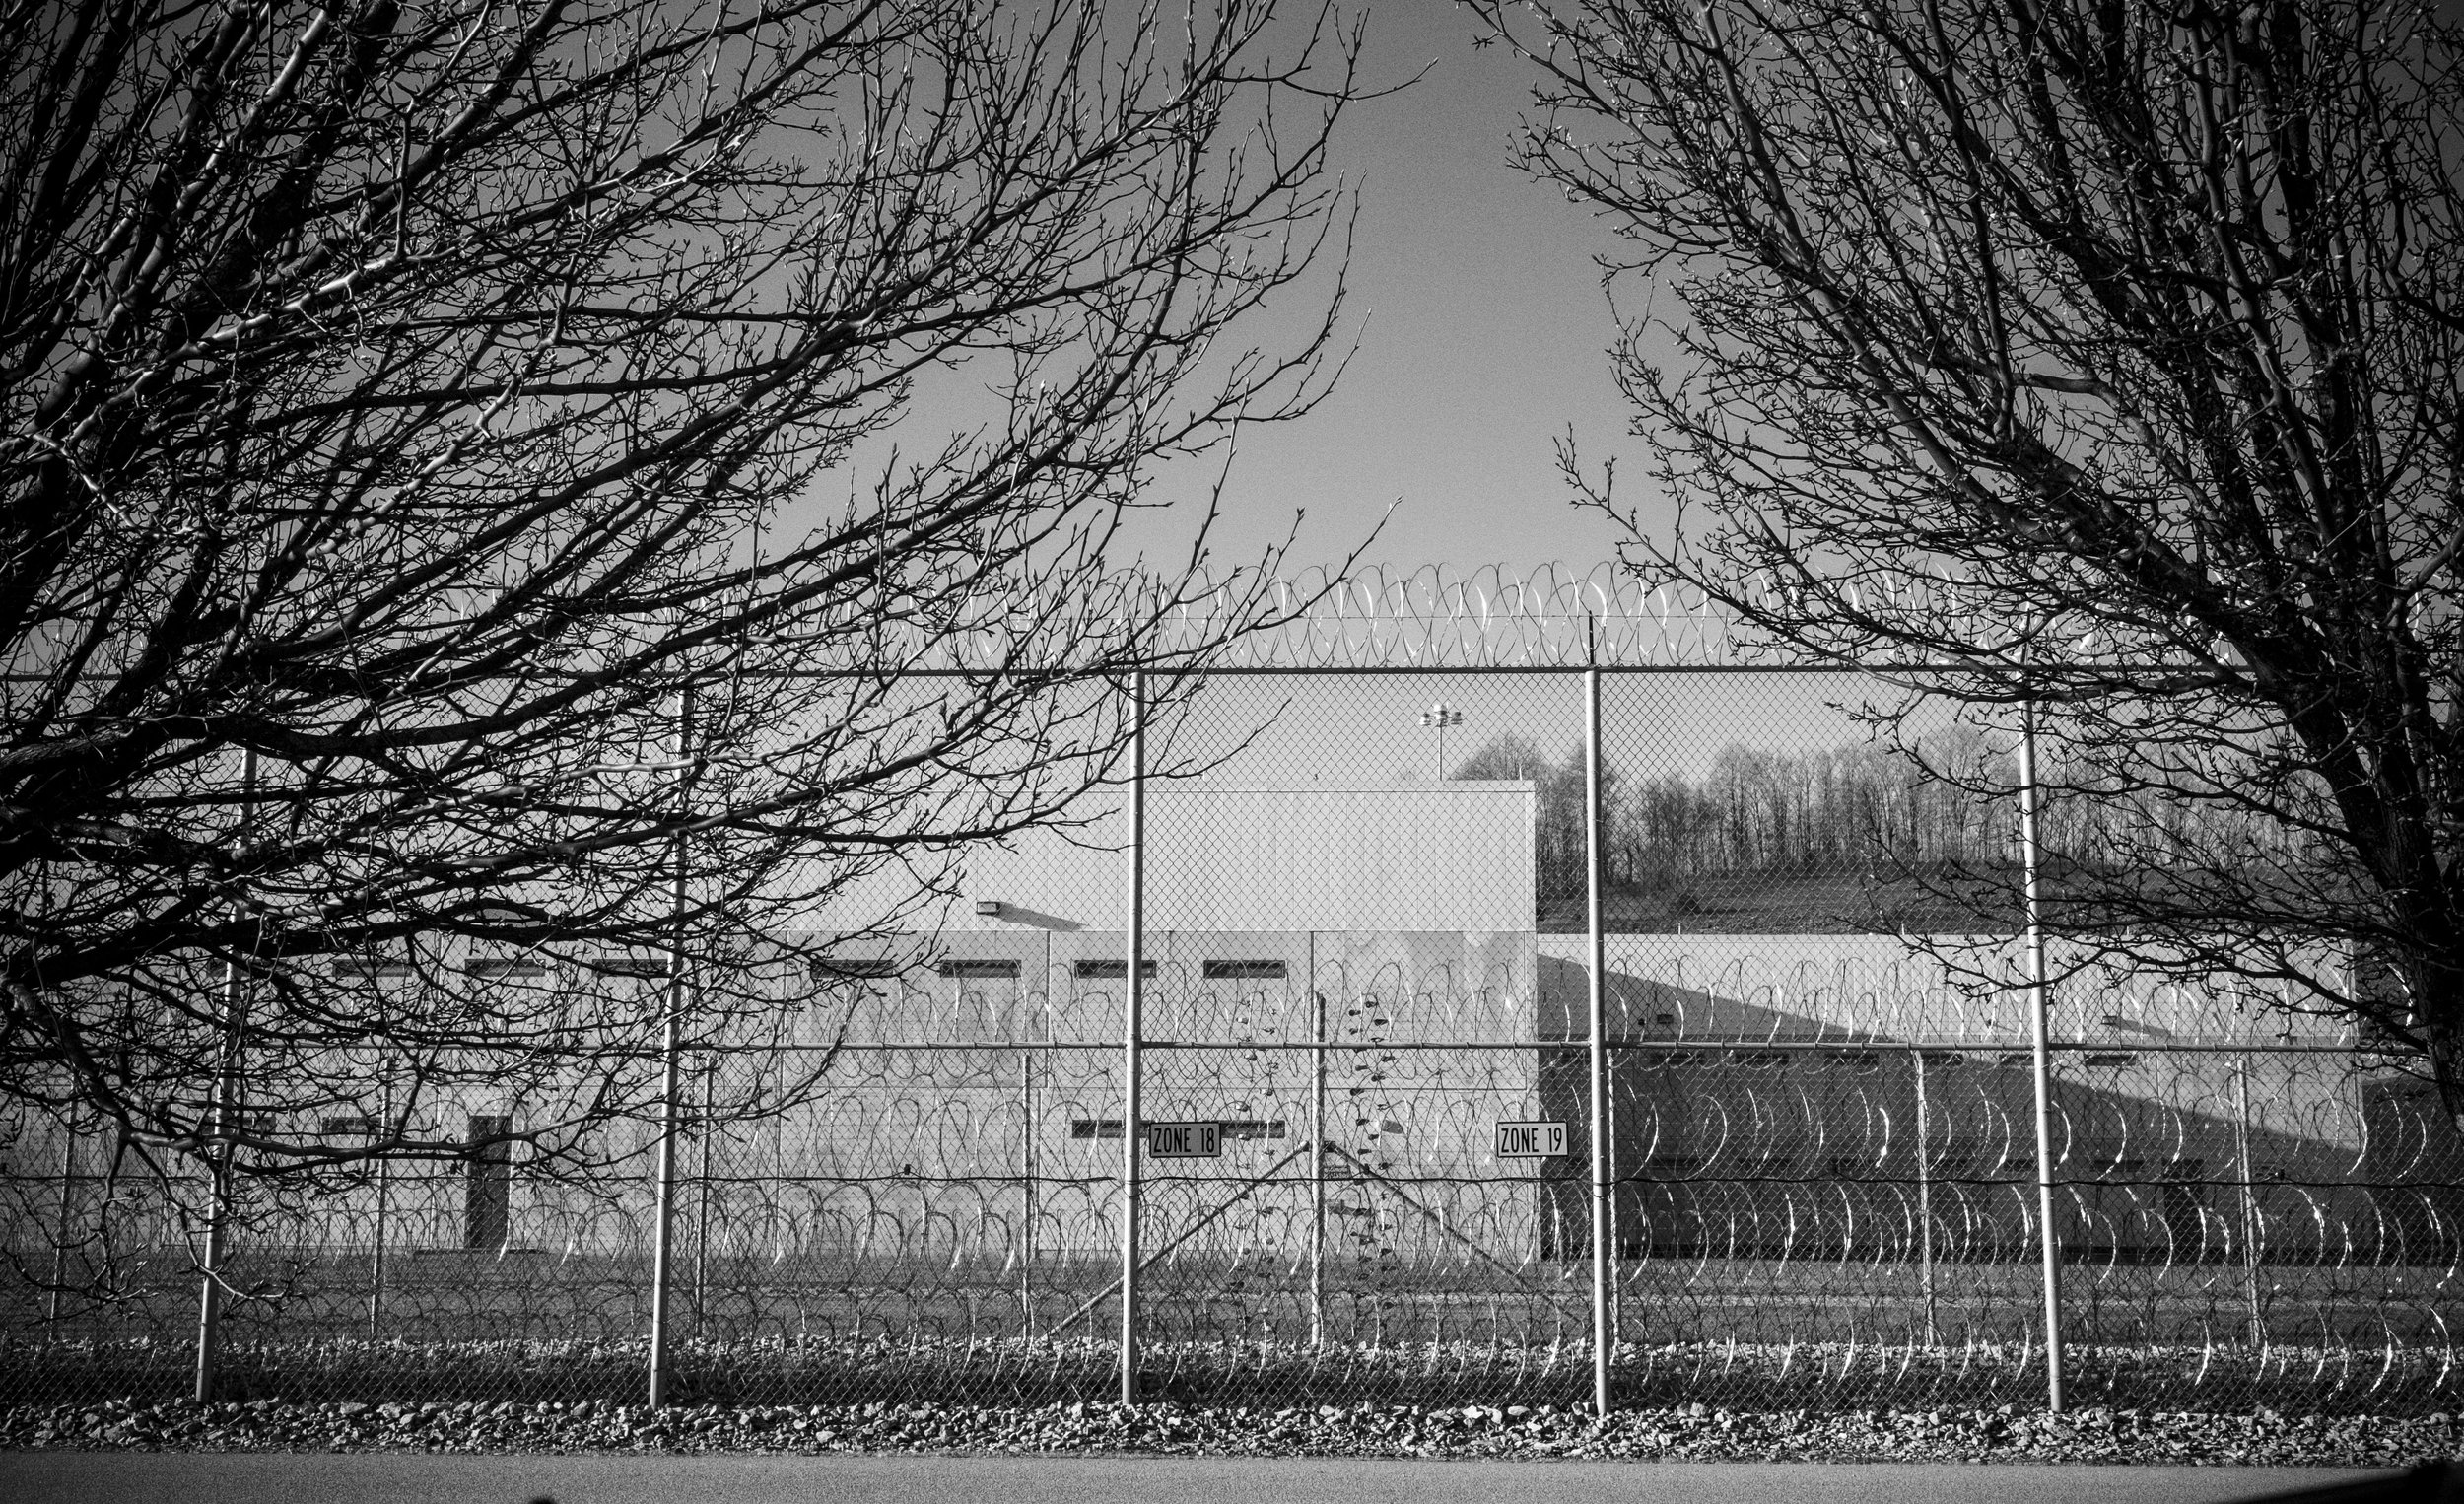 Wallen Ridge State Prison fence.